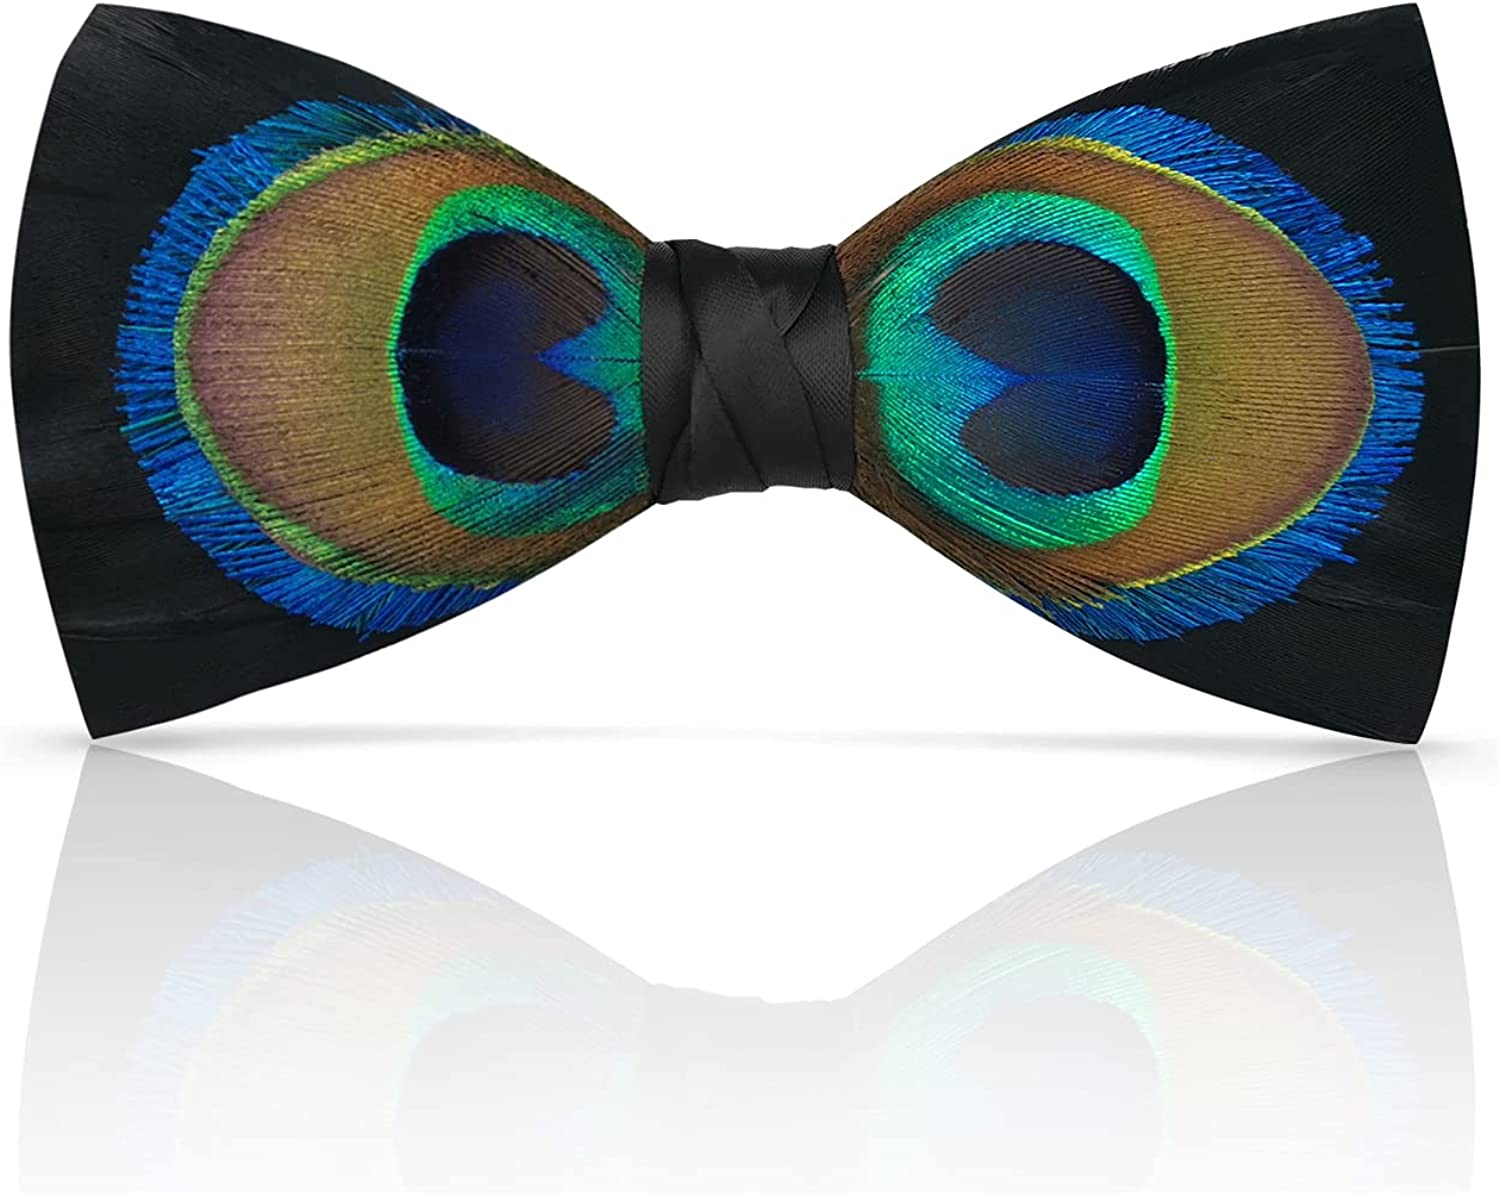 Lanzonia Feather Bow Tie for Men's Handmade Bowtie